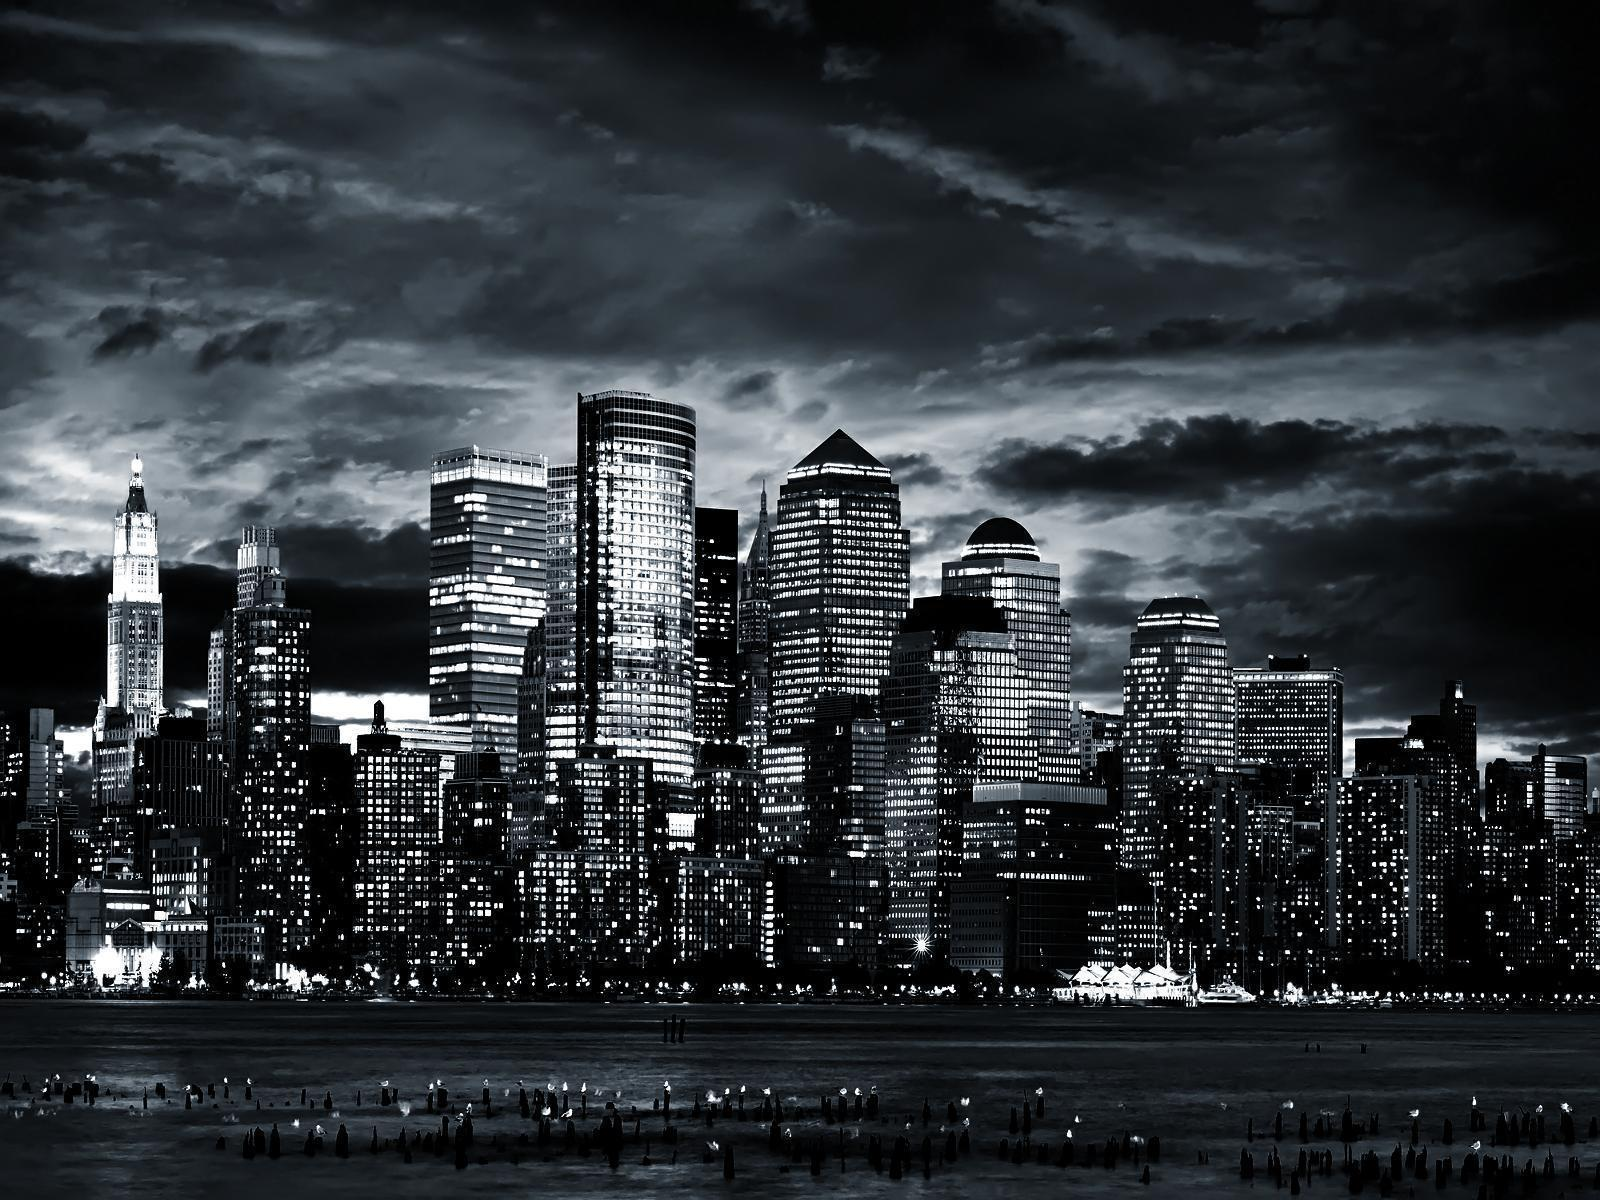 Black and White City by the Sea wallpapers II, Some Days Reality